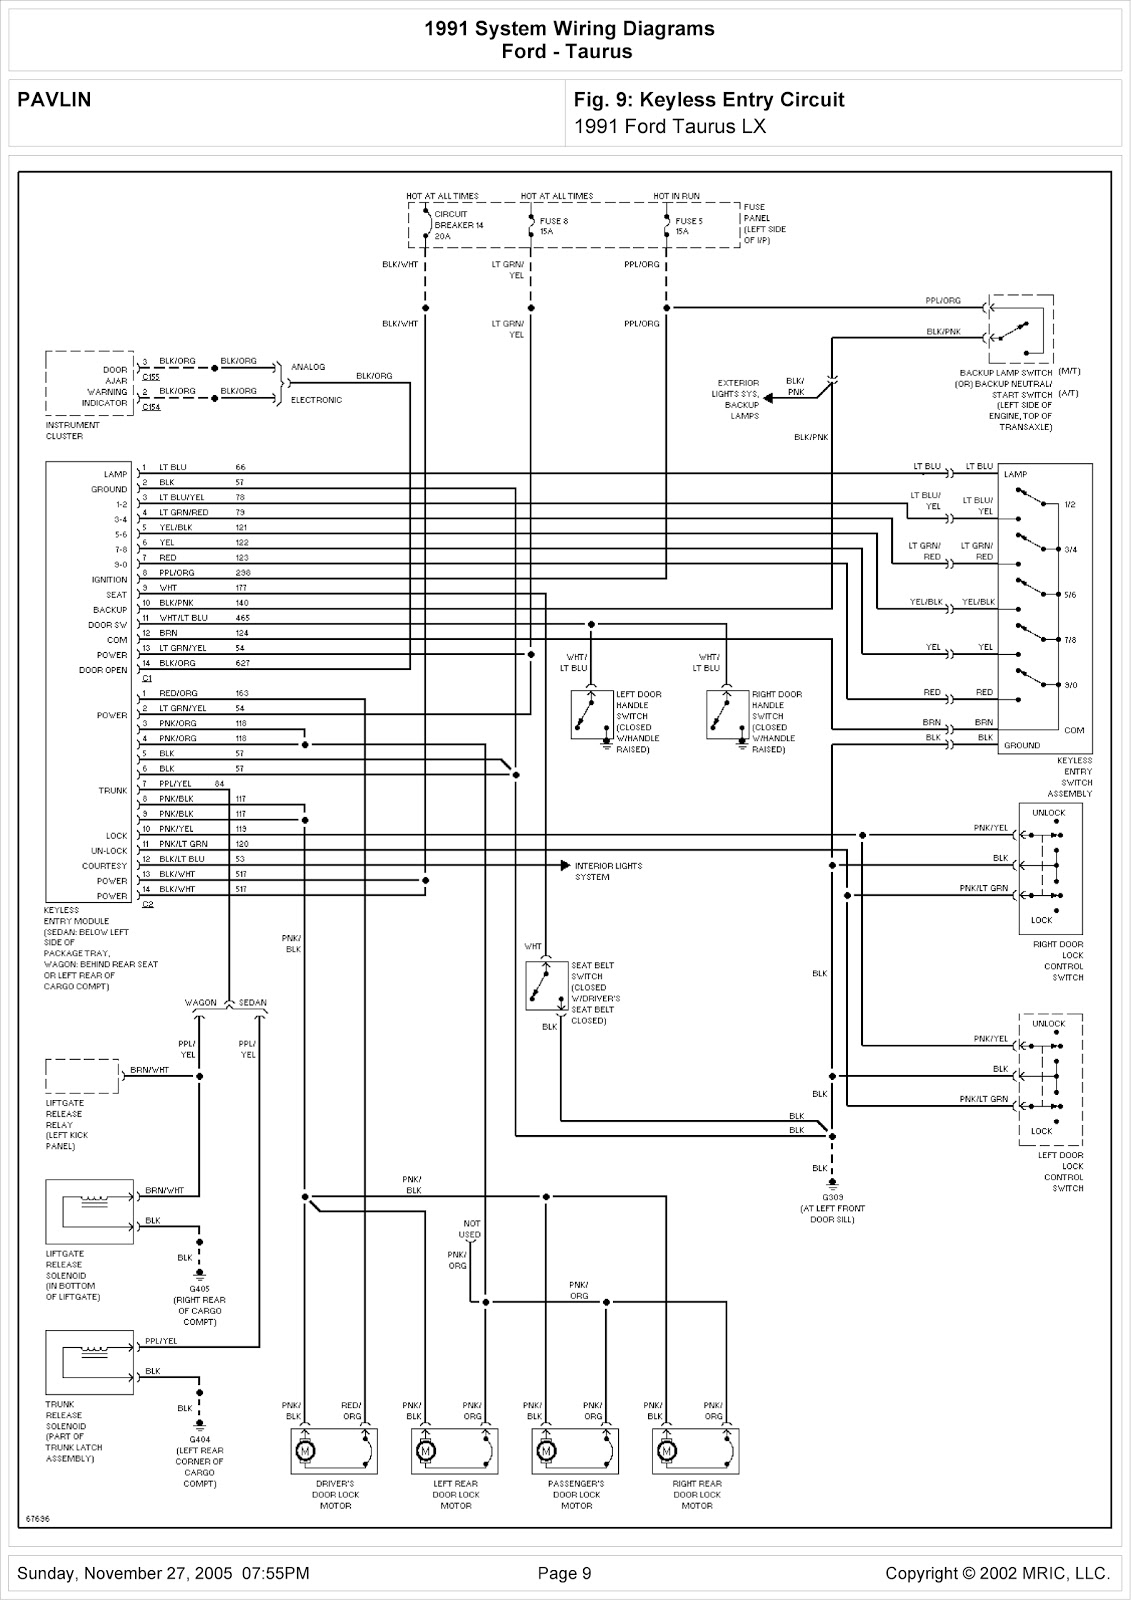 2002 Honda Civic Instrument Cluster Wiring Diagram from 4.bp.blogspot.com